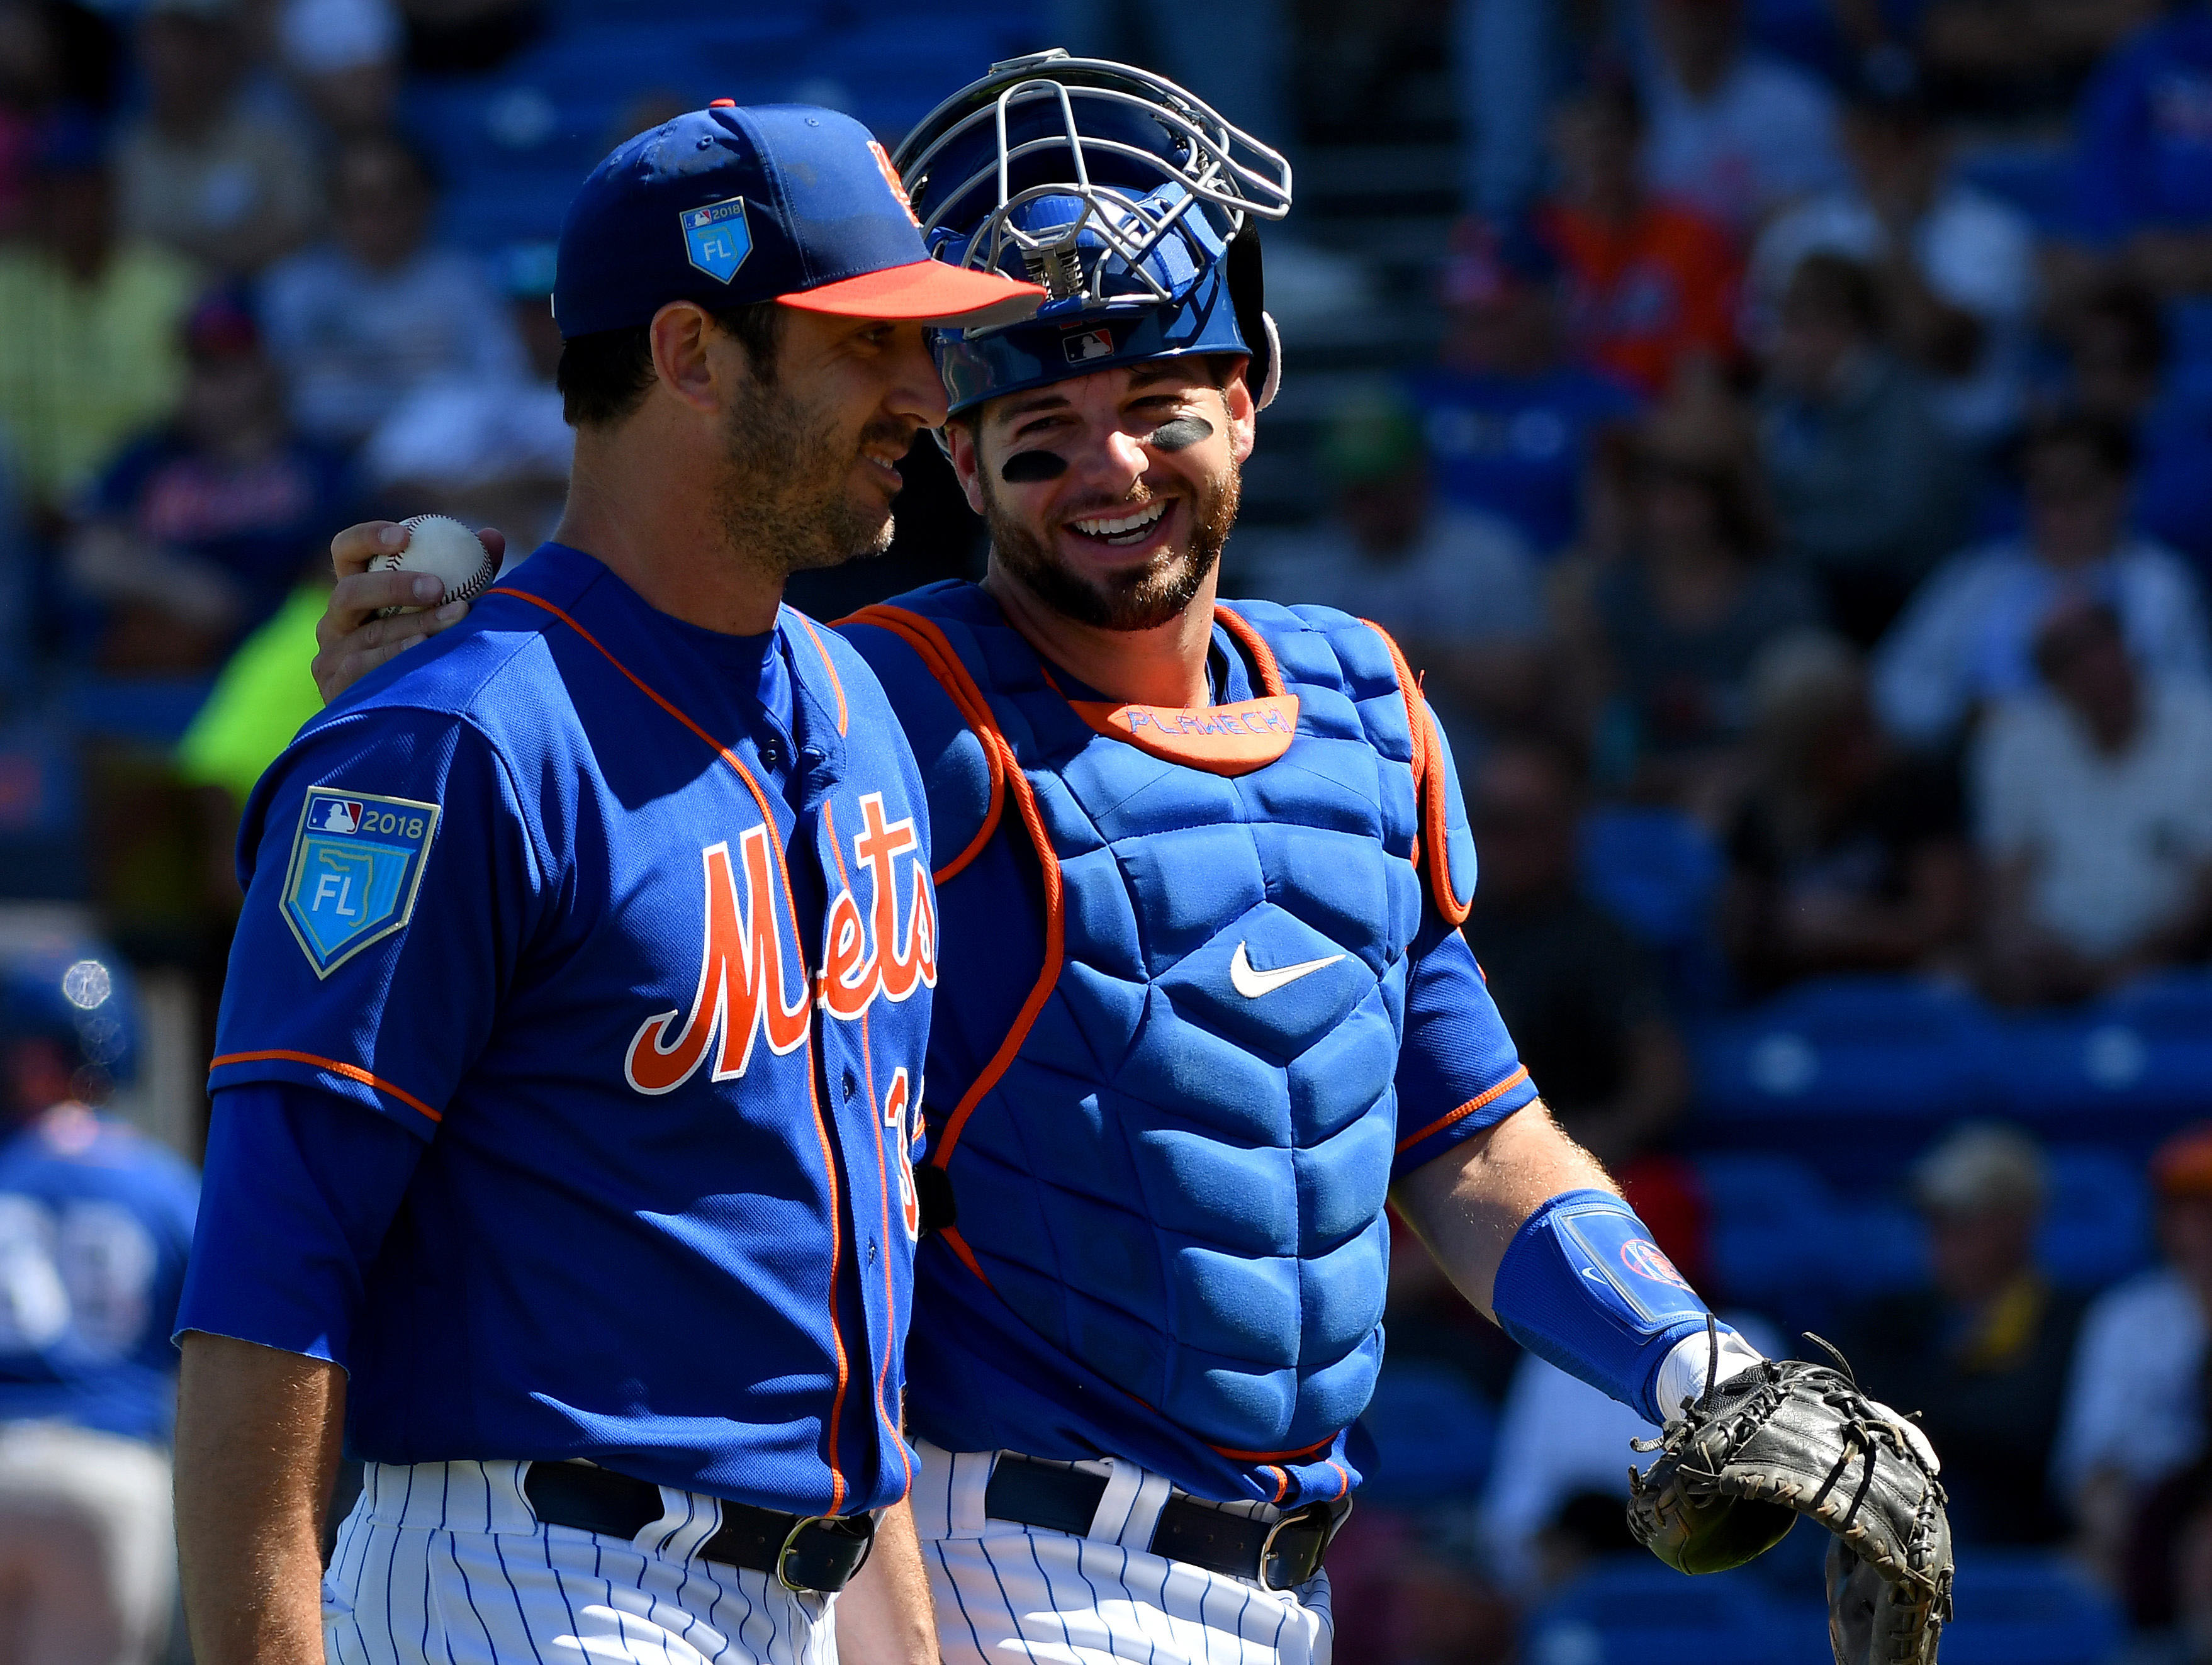 Matt Harvey Continues Strong Spring As New York Mets Snap Five Game Skid